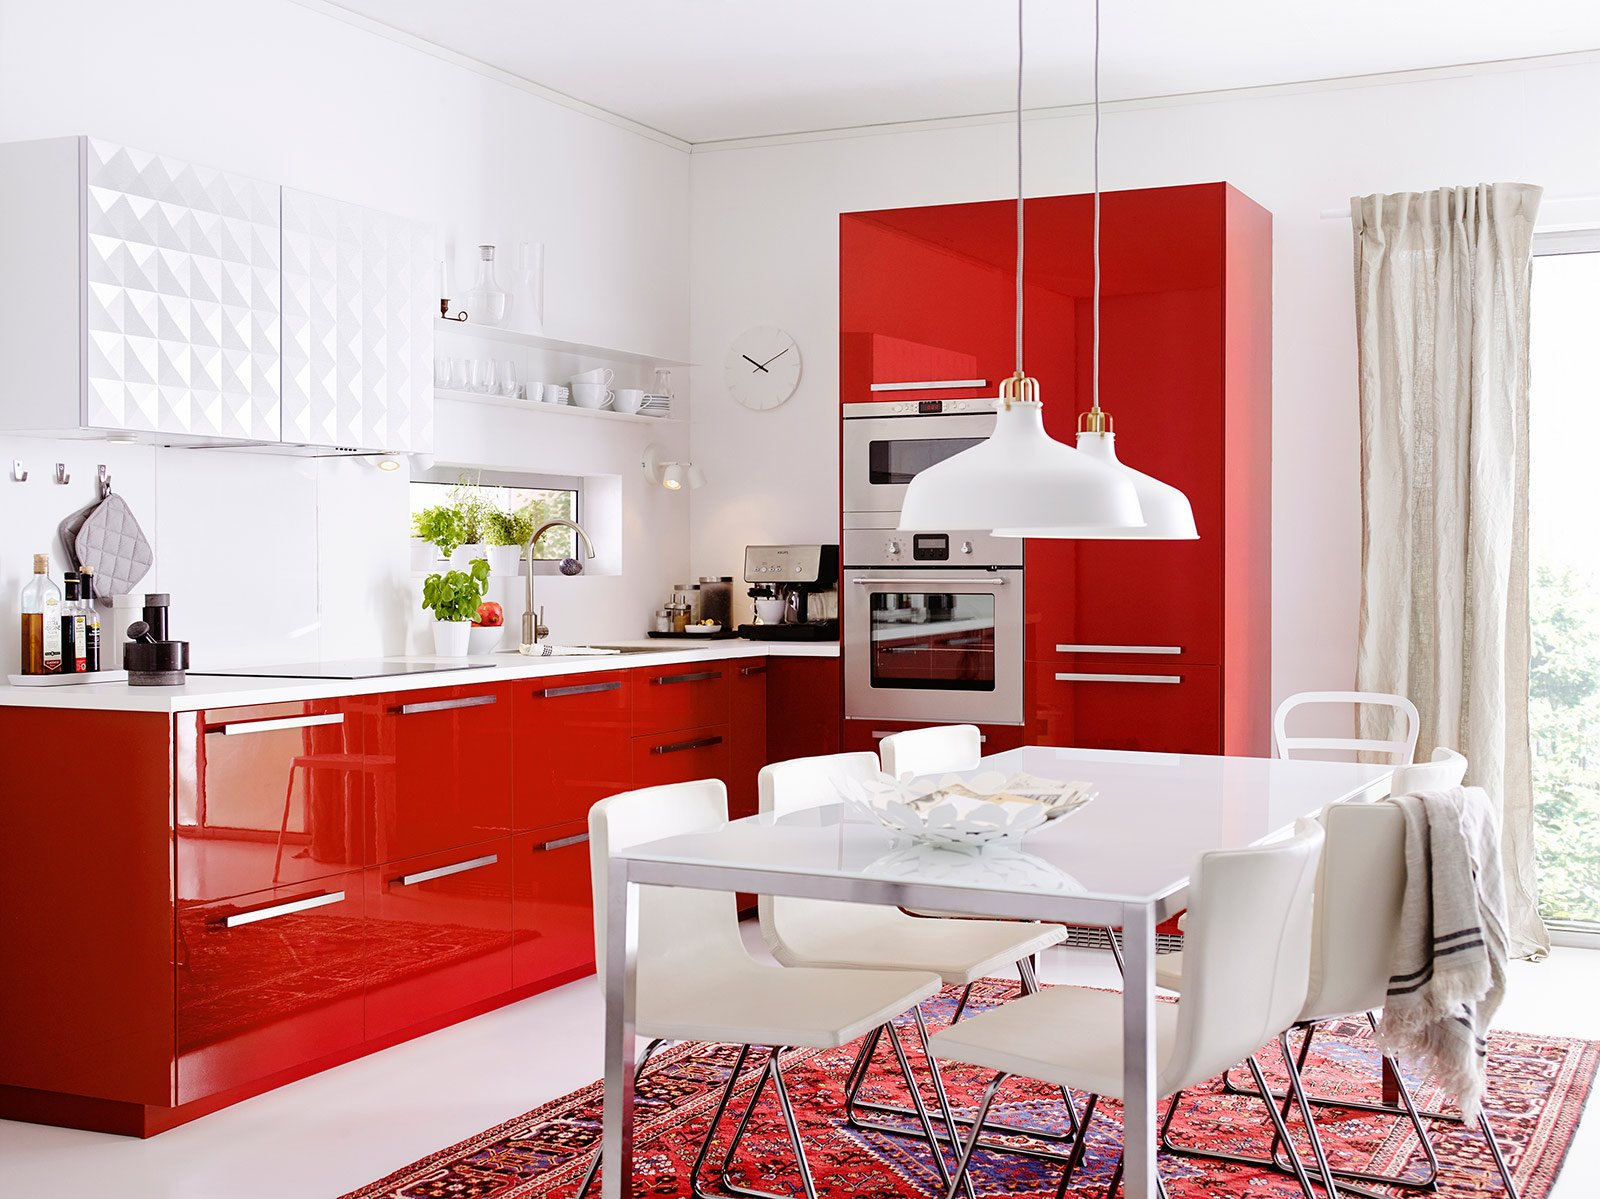 Cucina Ikea Rossa Cucine Colorate Come Un Quadro Contemporaneo Cose Di Casa